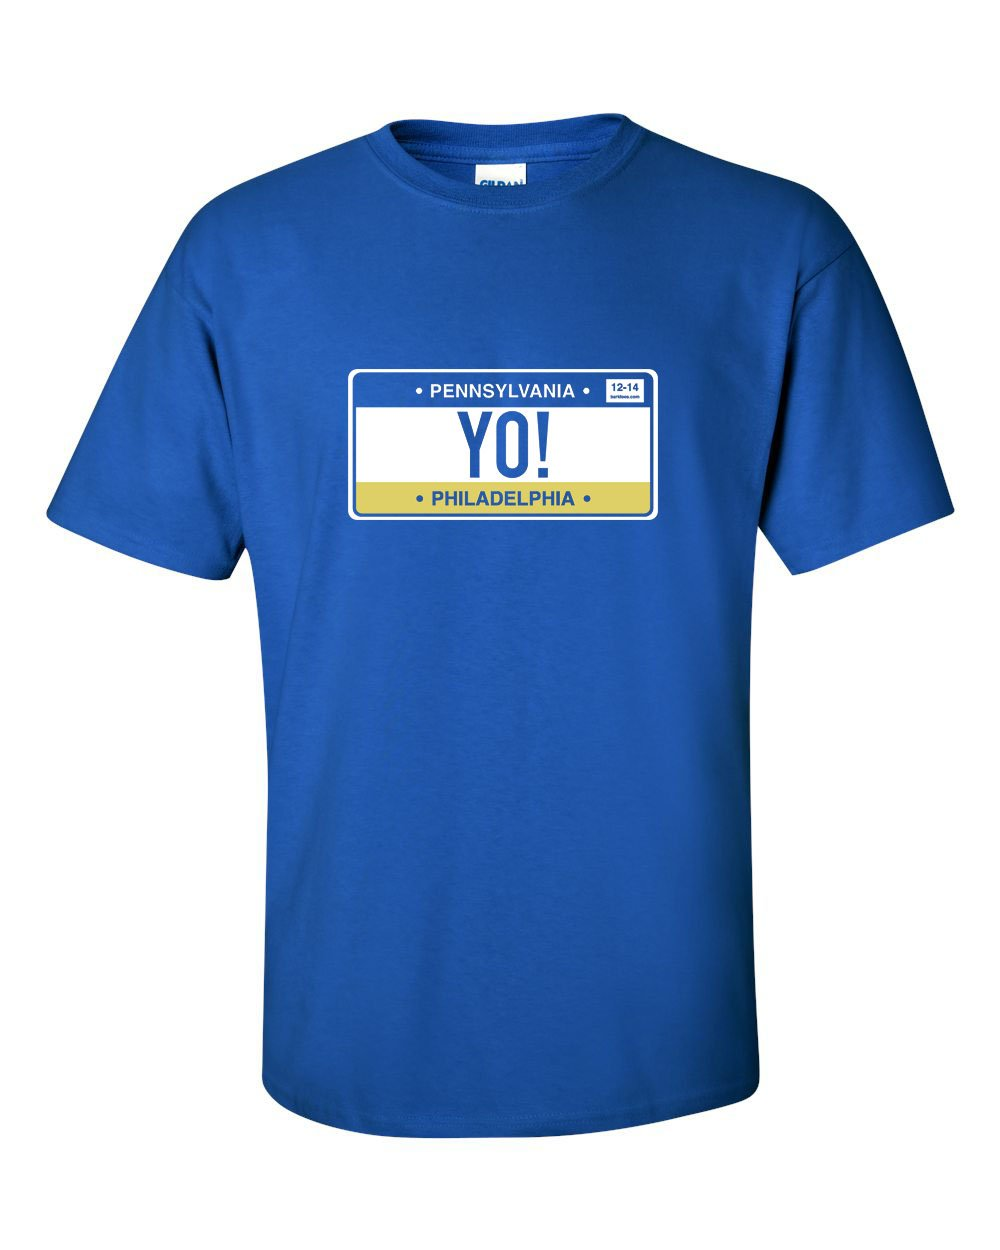 Yo Philly! Mens/Unisex T-Shirt